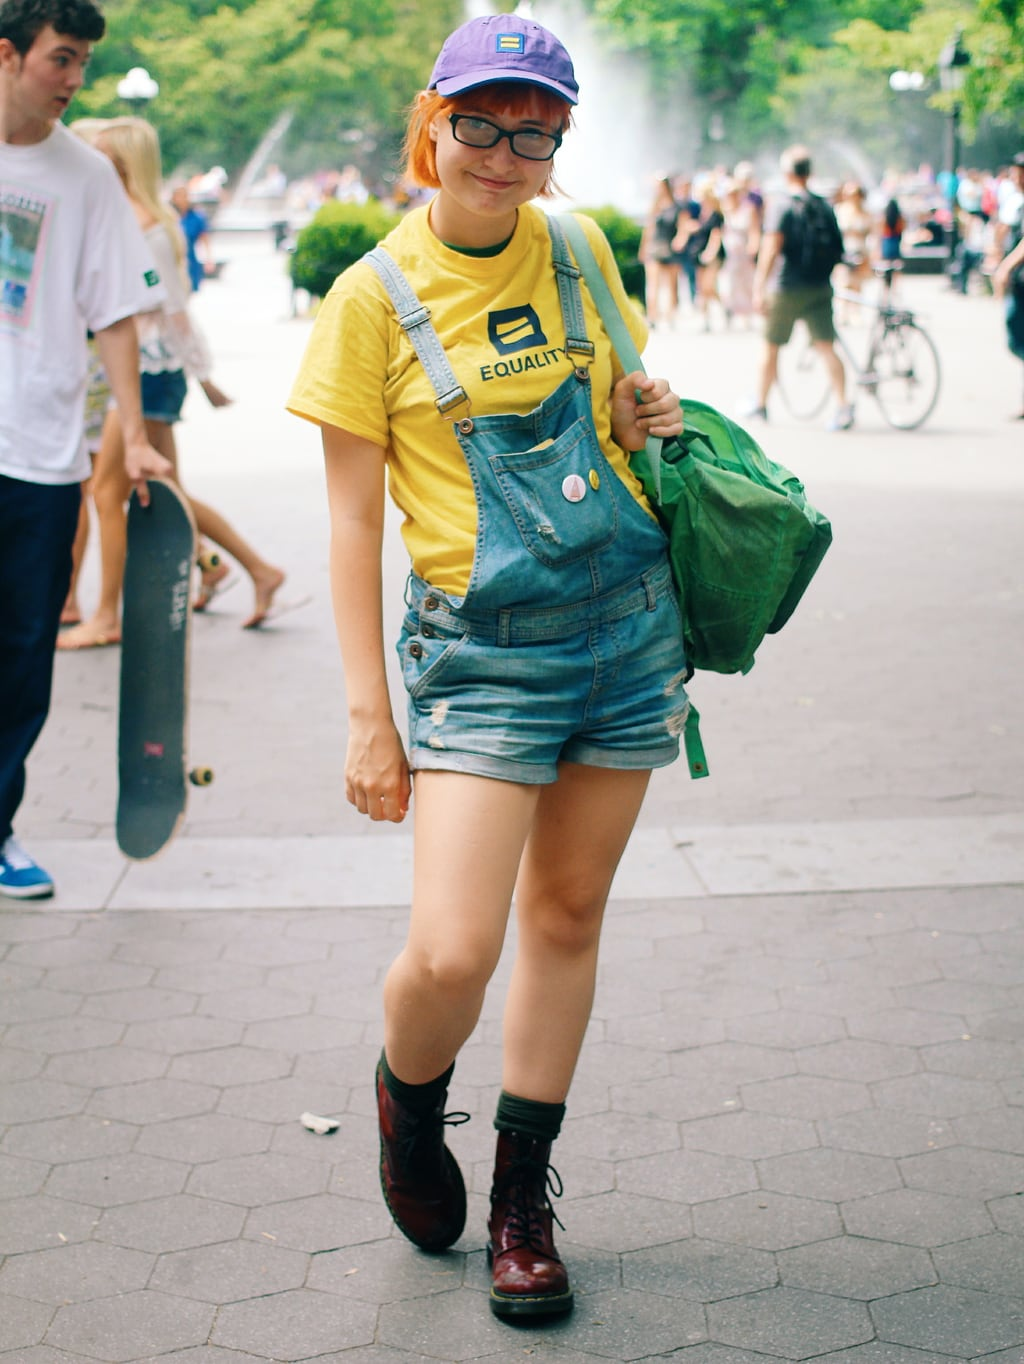 Fashion at School of Visual Arts, NYC - student Kaylee wears a quirky summer outfit idea with an Equality hat and tee shirt, distressed overalls, a green backpack, and maroon Doc Martens boots